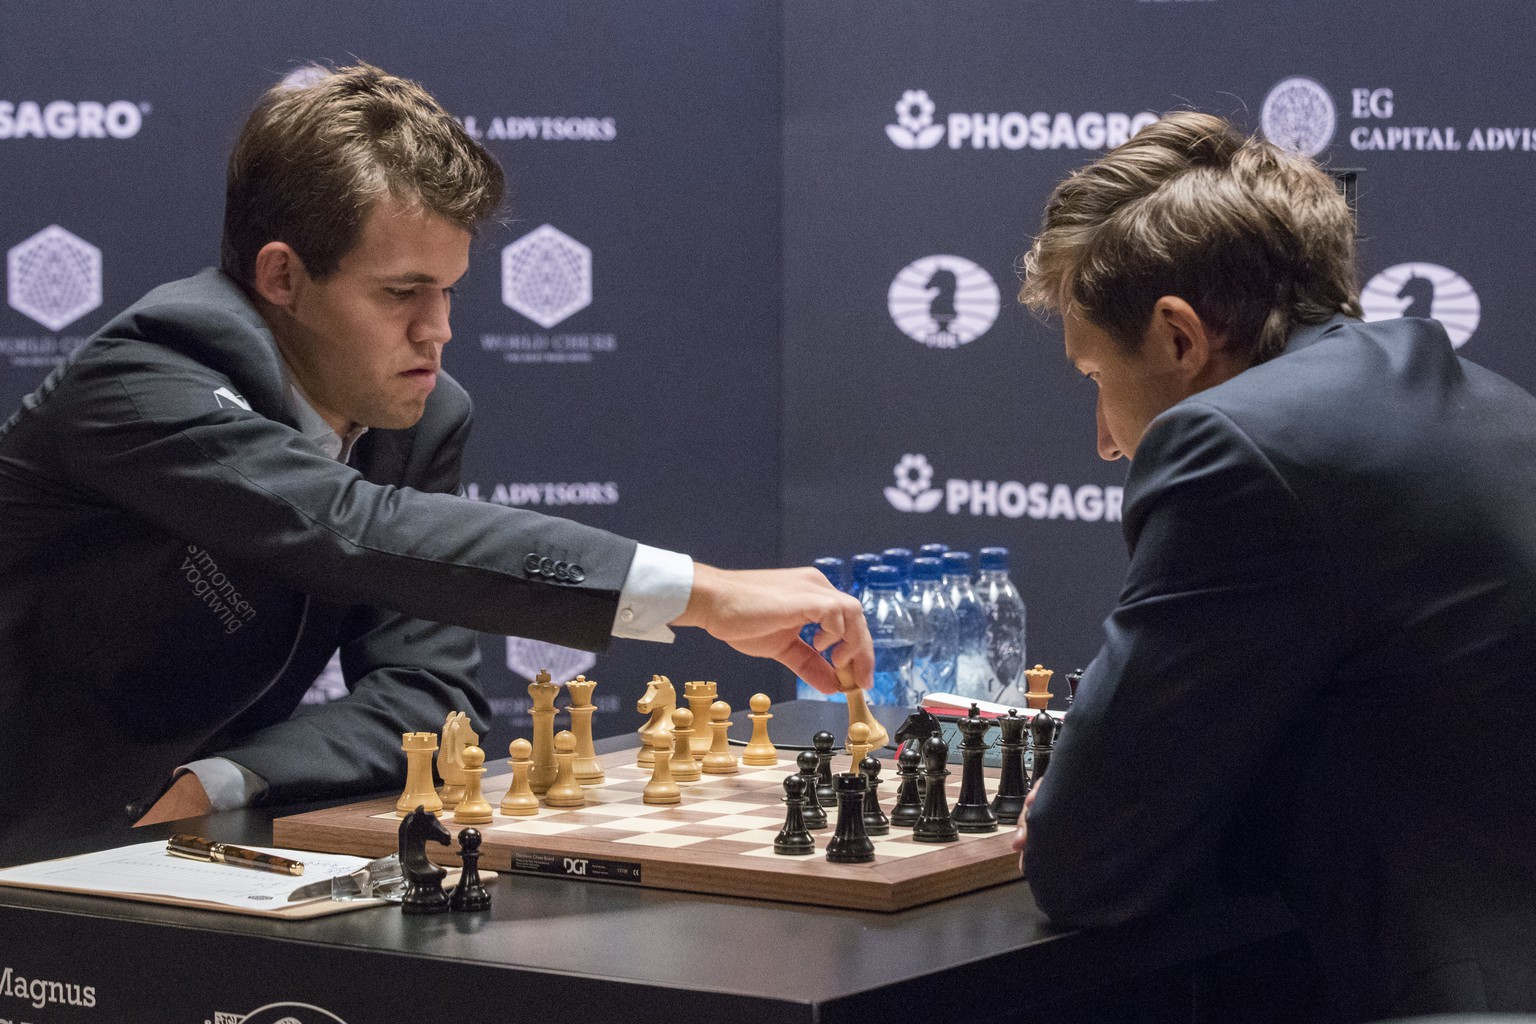 Chess world champion Magnus Carlsen, of Norway, left, makes a move against challenger Sergey Karjakin, of Russia, during the first round of the World Chess Championship, Friday, Nov. 11, 2016, in New York. (AP Photo/Mary Altaffer)